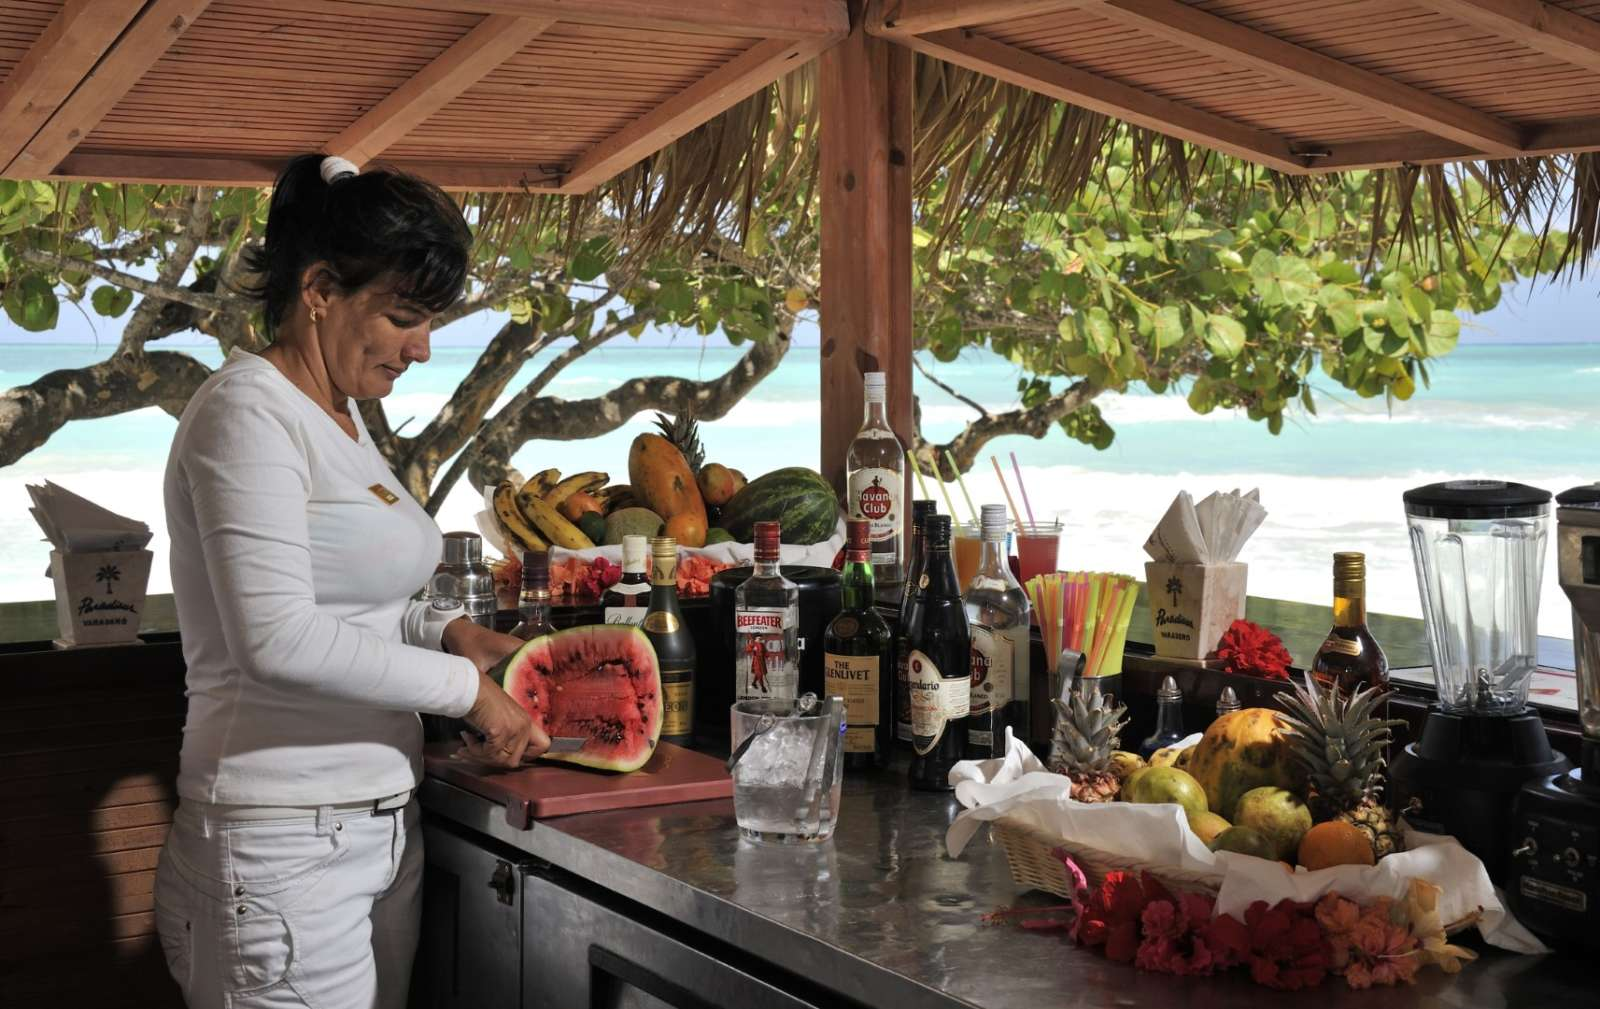 Beach bar at Paradisus Varadero